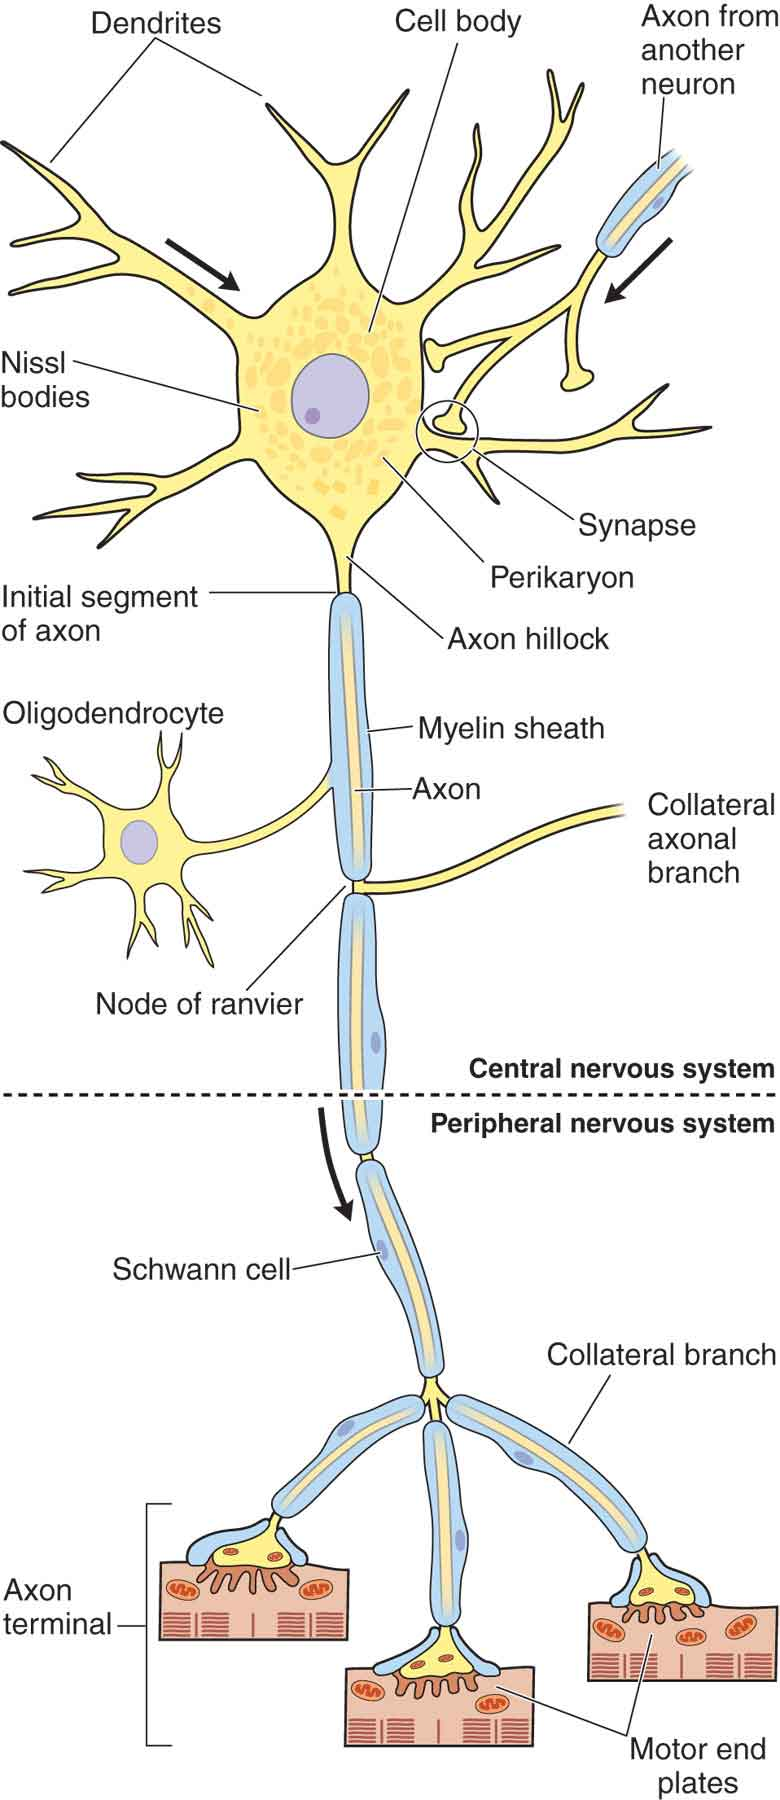 hight resolution of figure 3 1 schematic drawing of a neuron reproduced with permission from chapter 9 nerve tissue the nervous system in mescher al eds